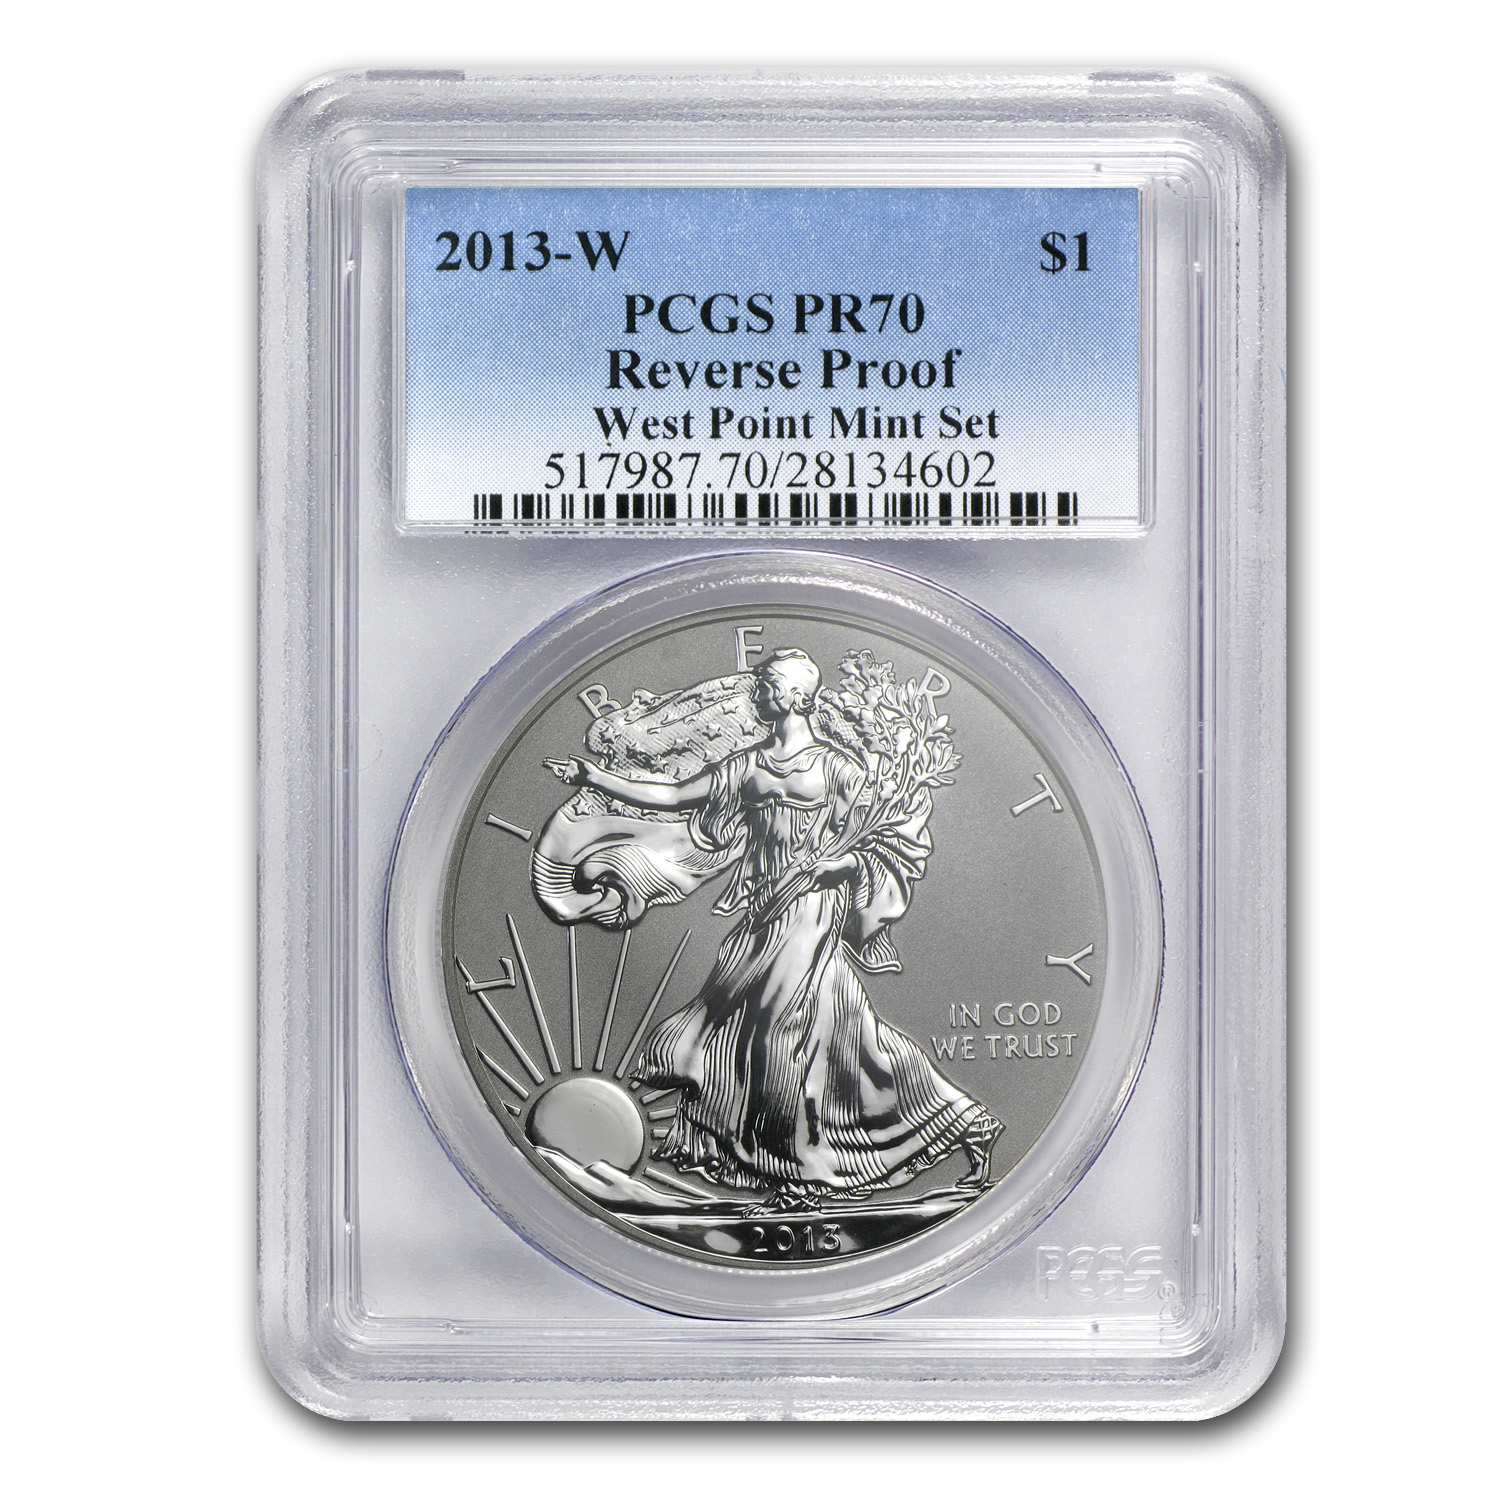 2013-W (Reverse Proof) Silver Eagle PCGS PR-70